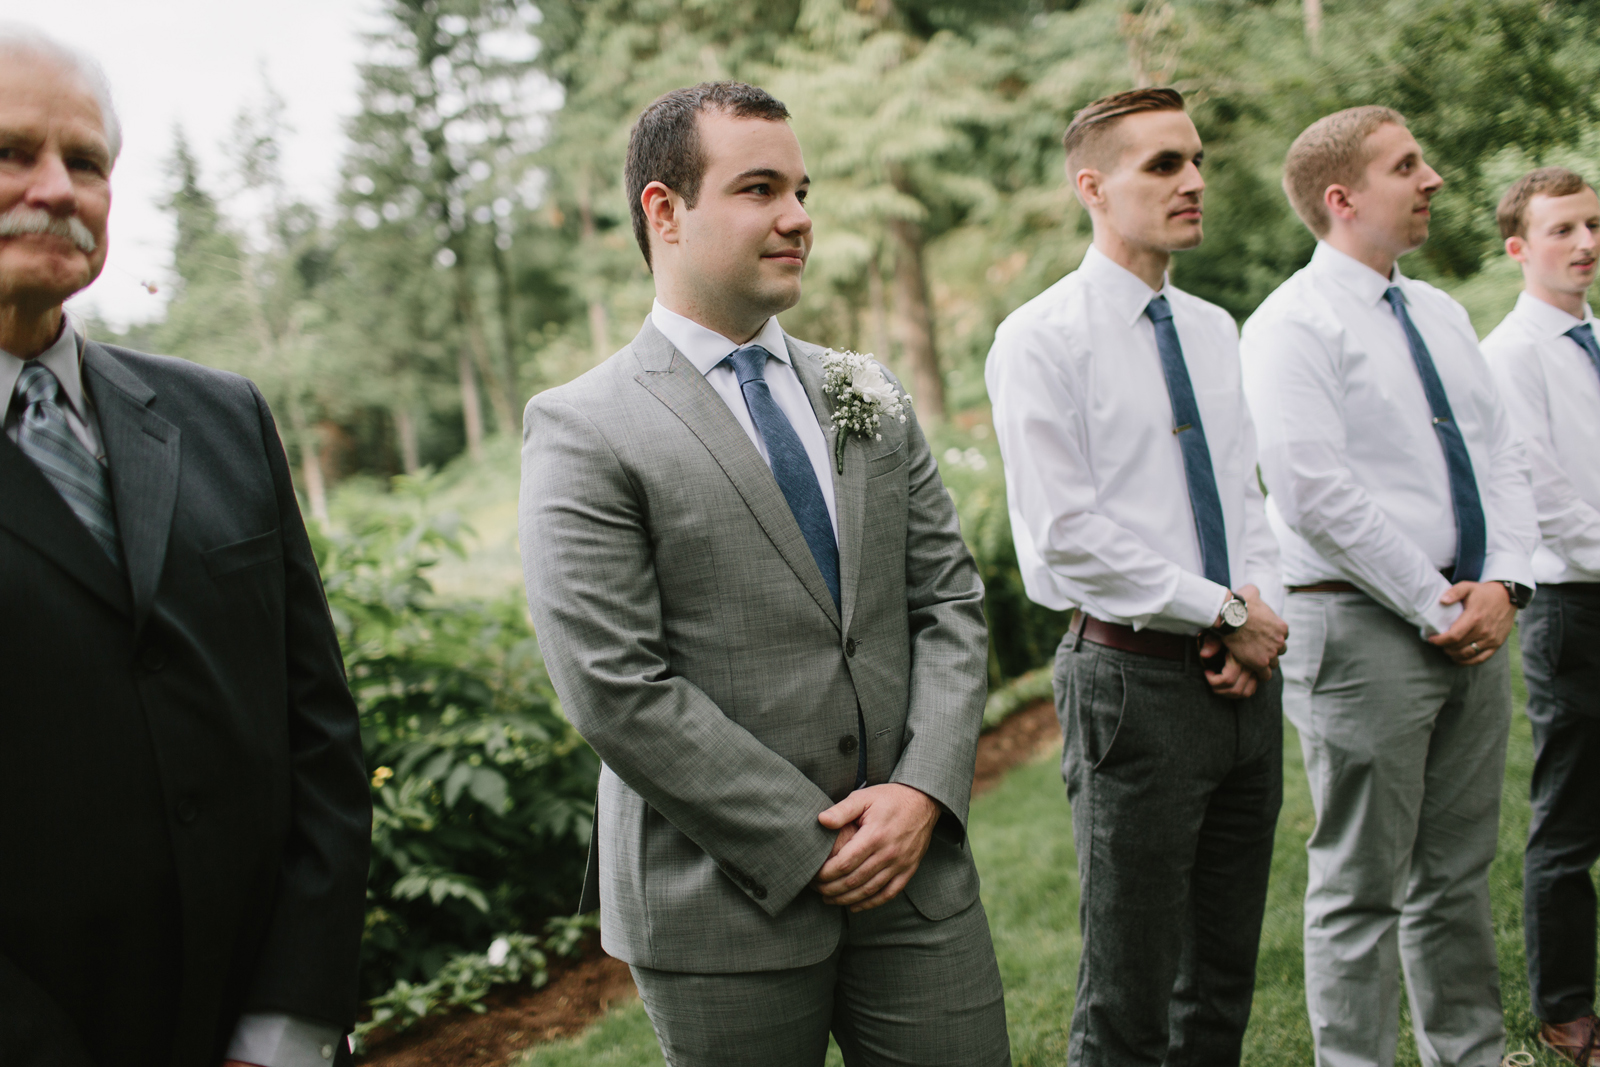 The groom before his bride walks down the aisle at Bridal Veil Lakes in Corbett, OR